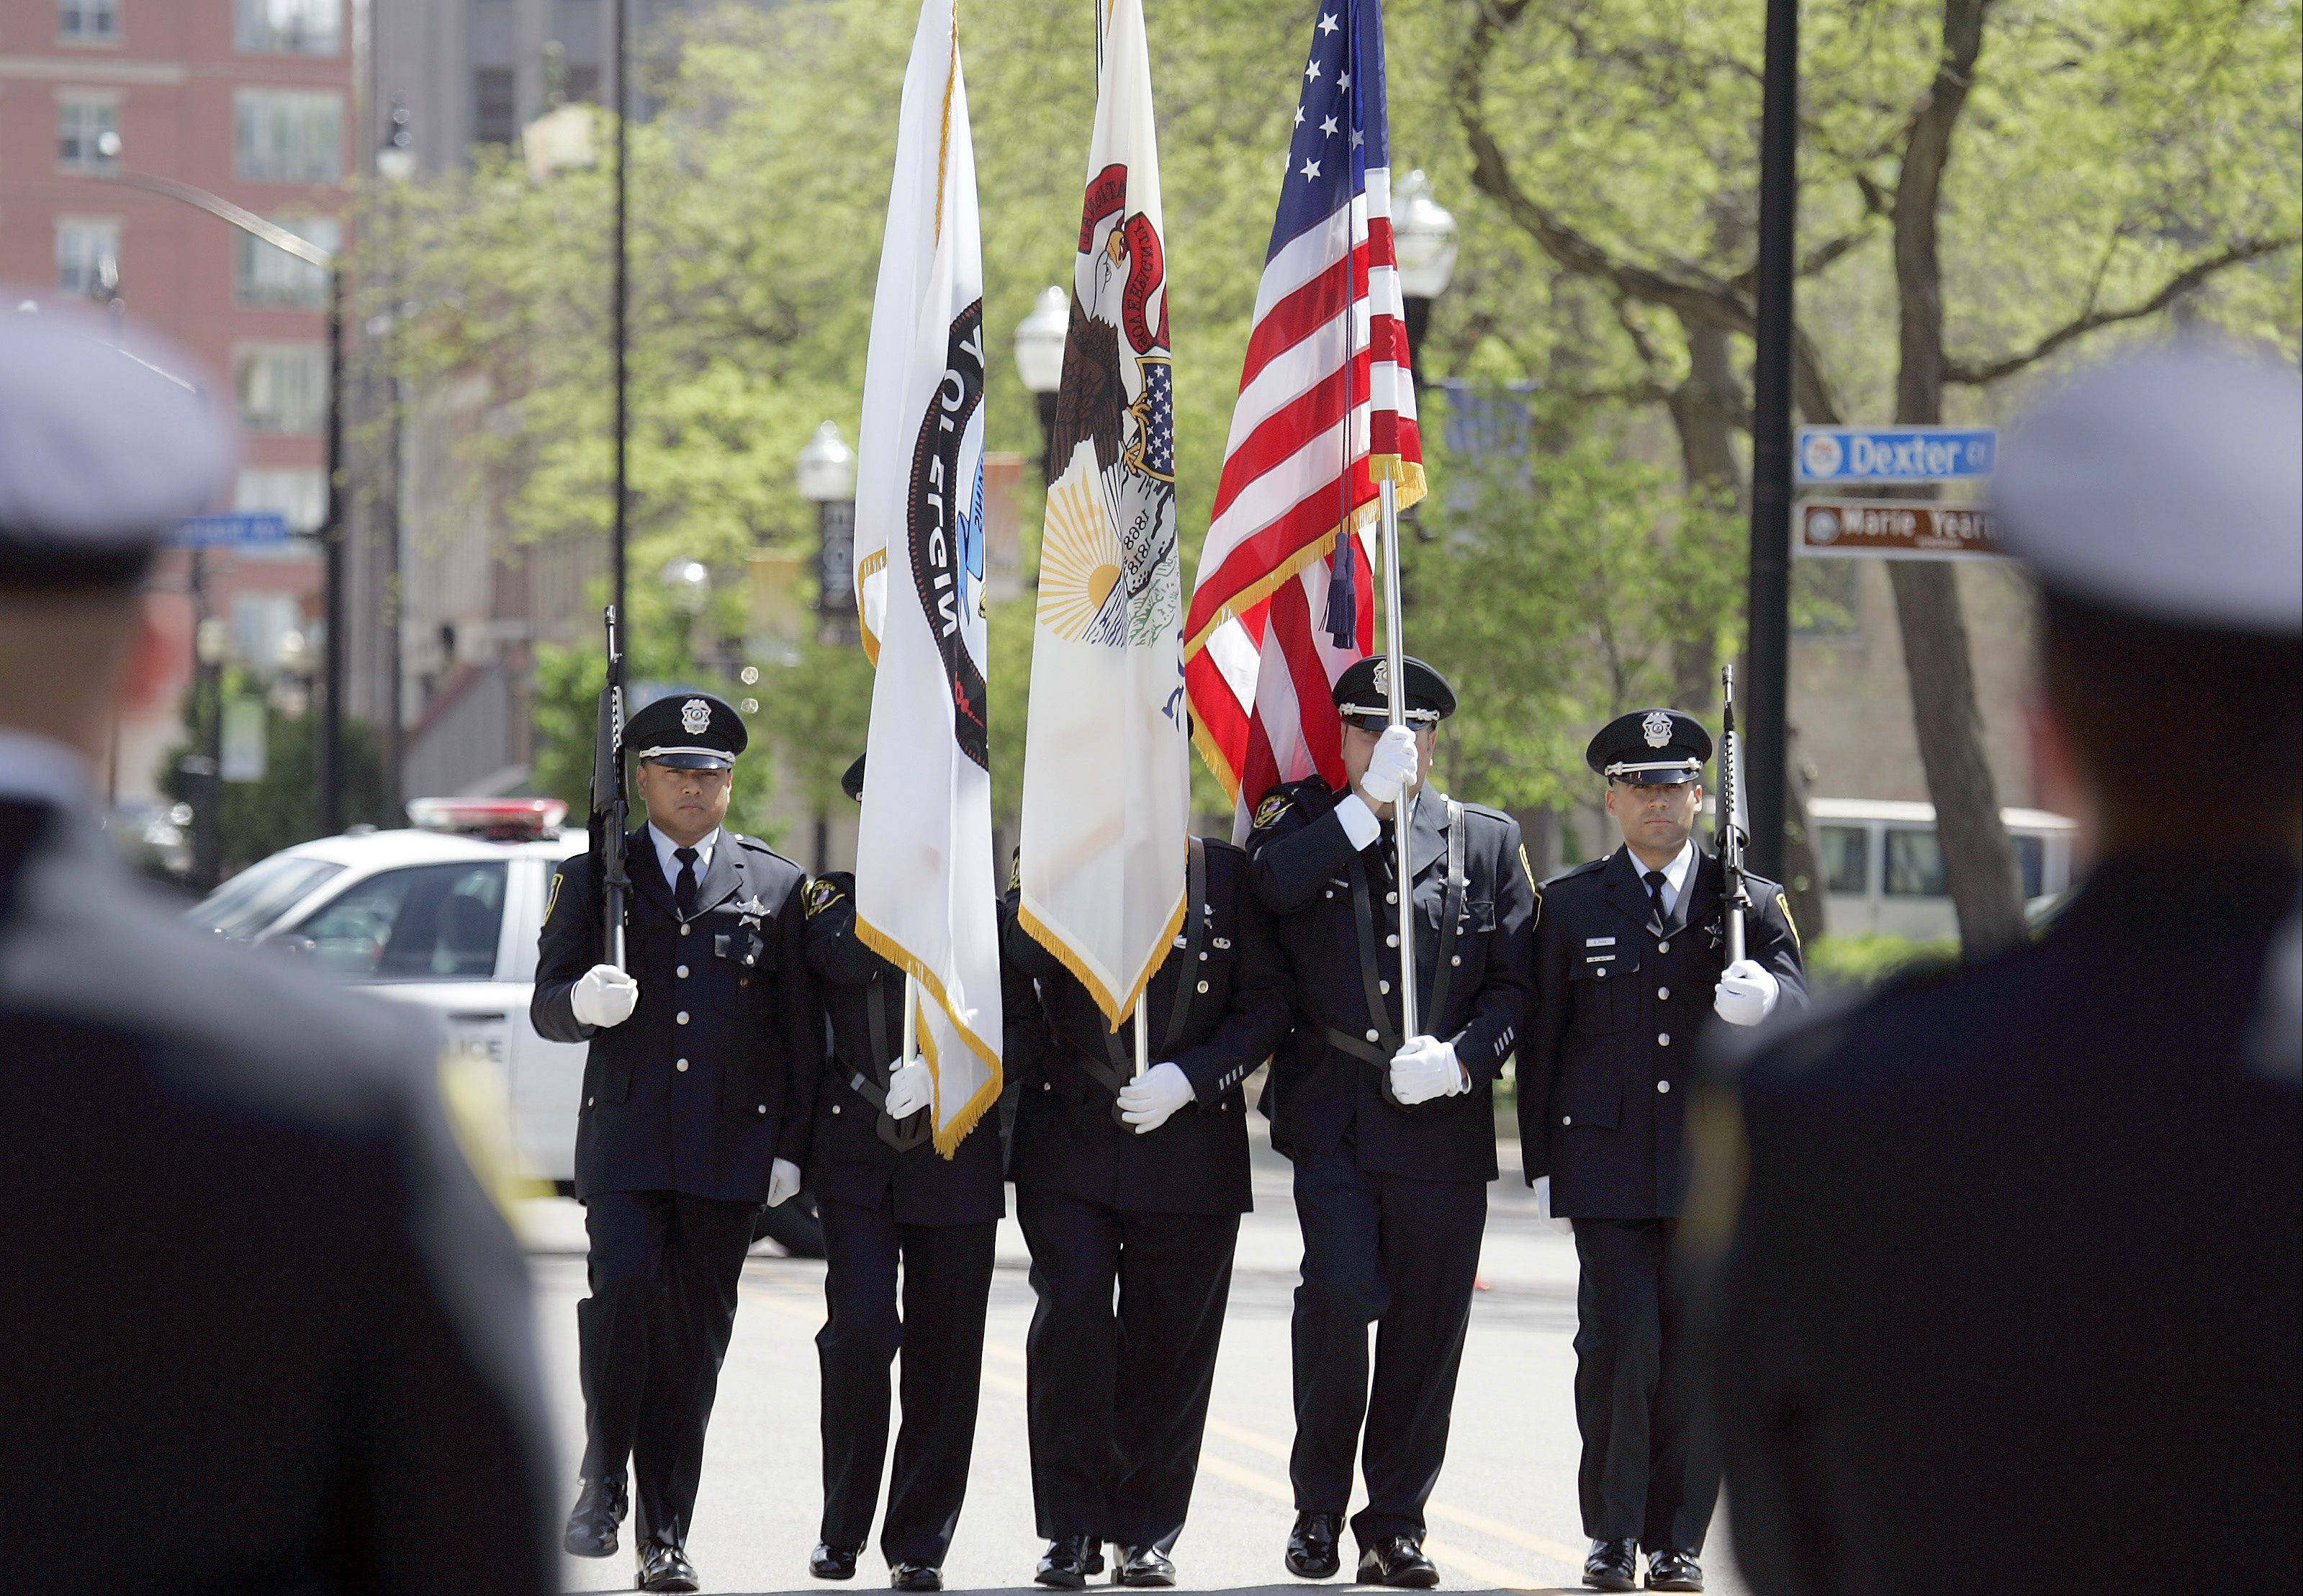 Framed by their fellow officers, the honor guard moves along Douglas Avenue in presenting the colors at the beginning of Wednesday's Elgin Police Department memorial service.